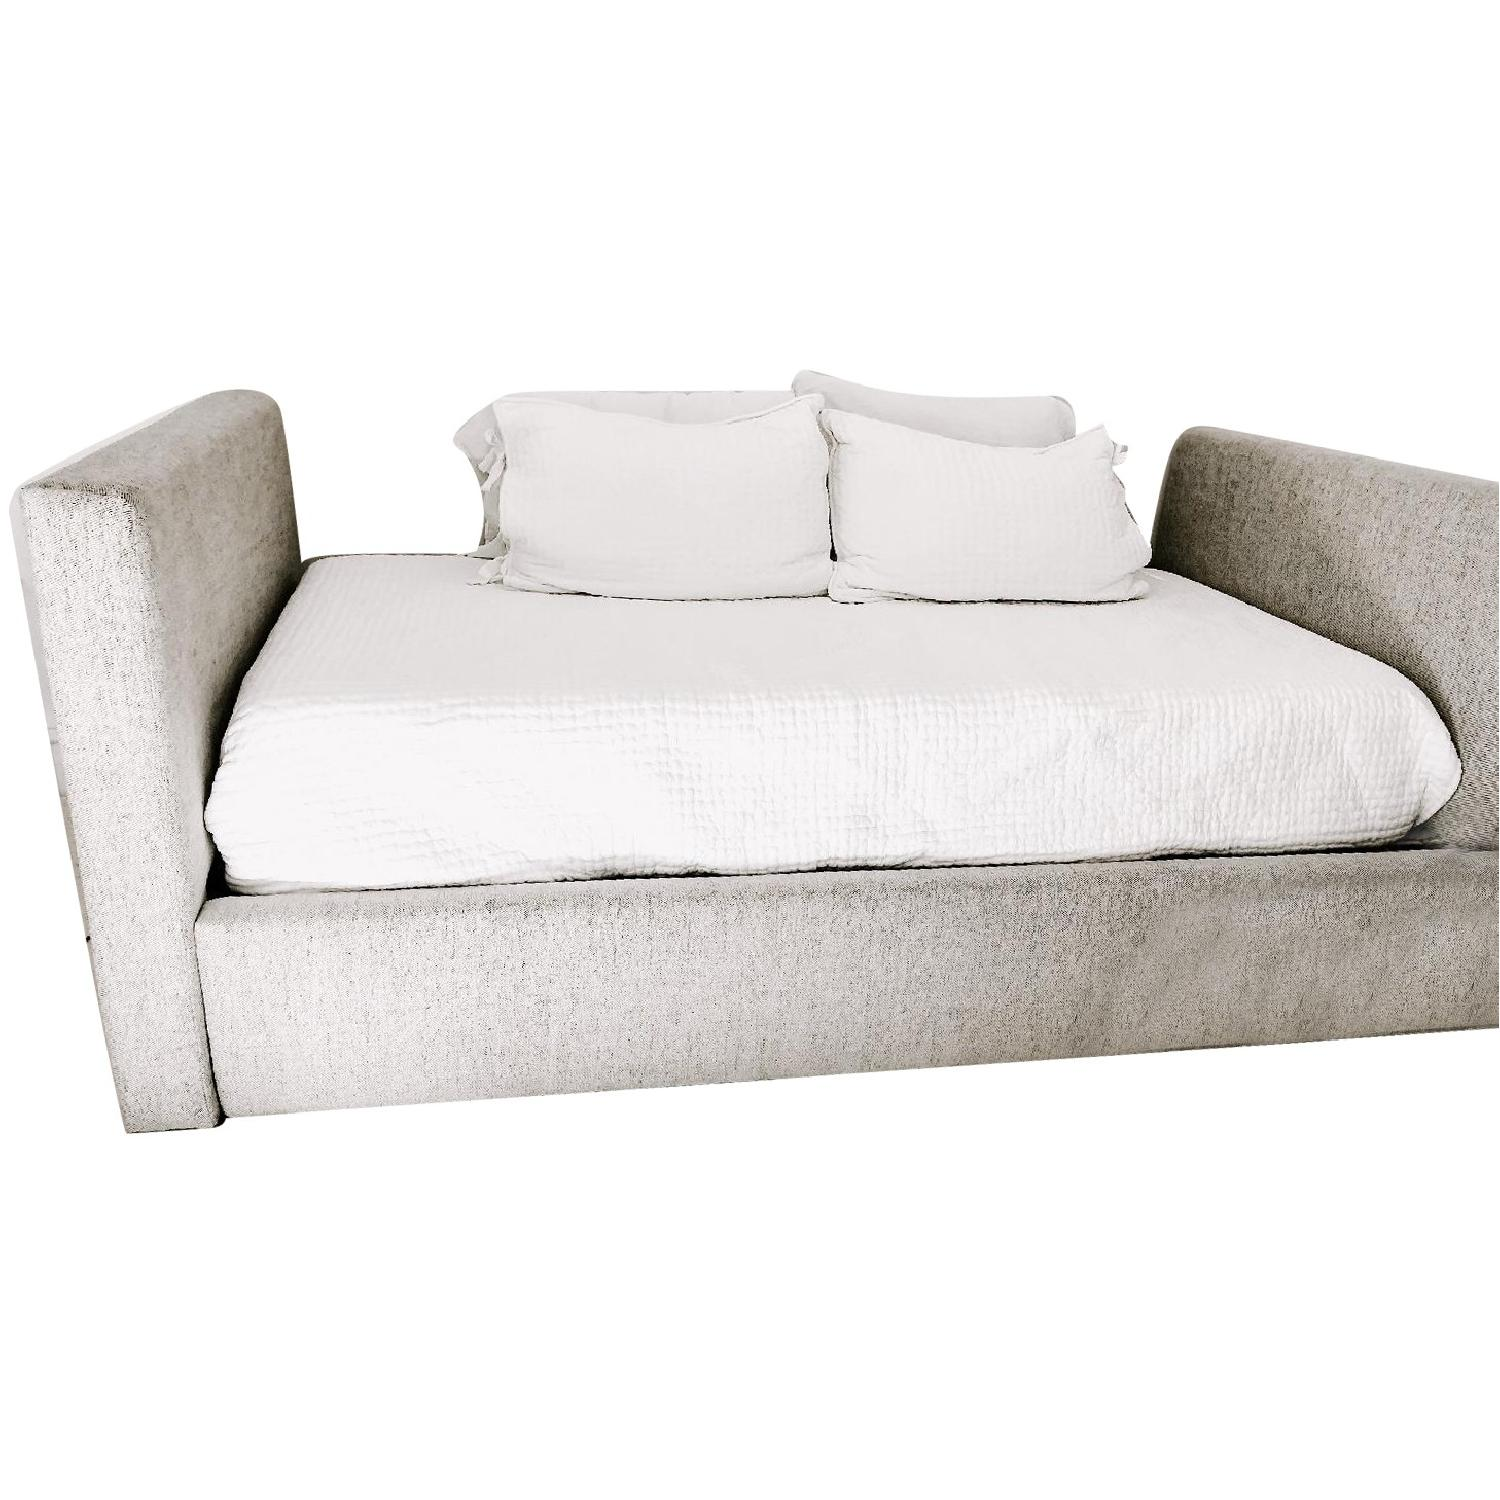 West Elm Urban Daybed w/ Trundle